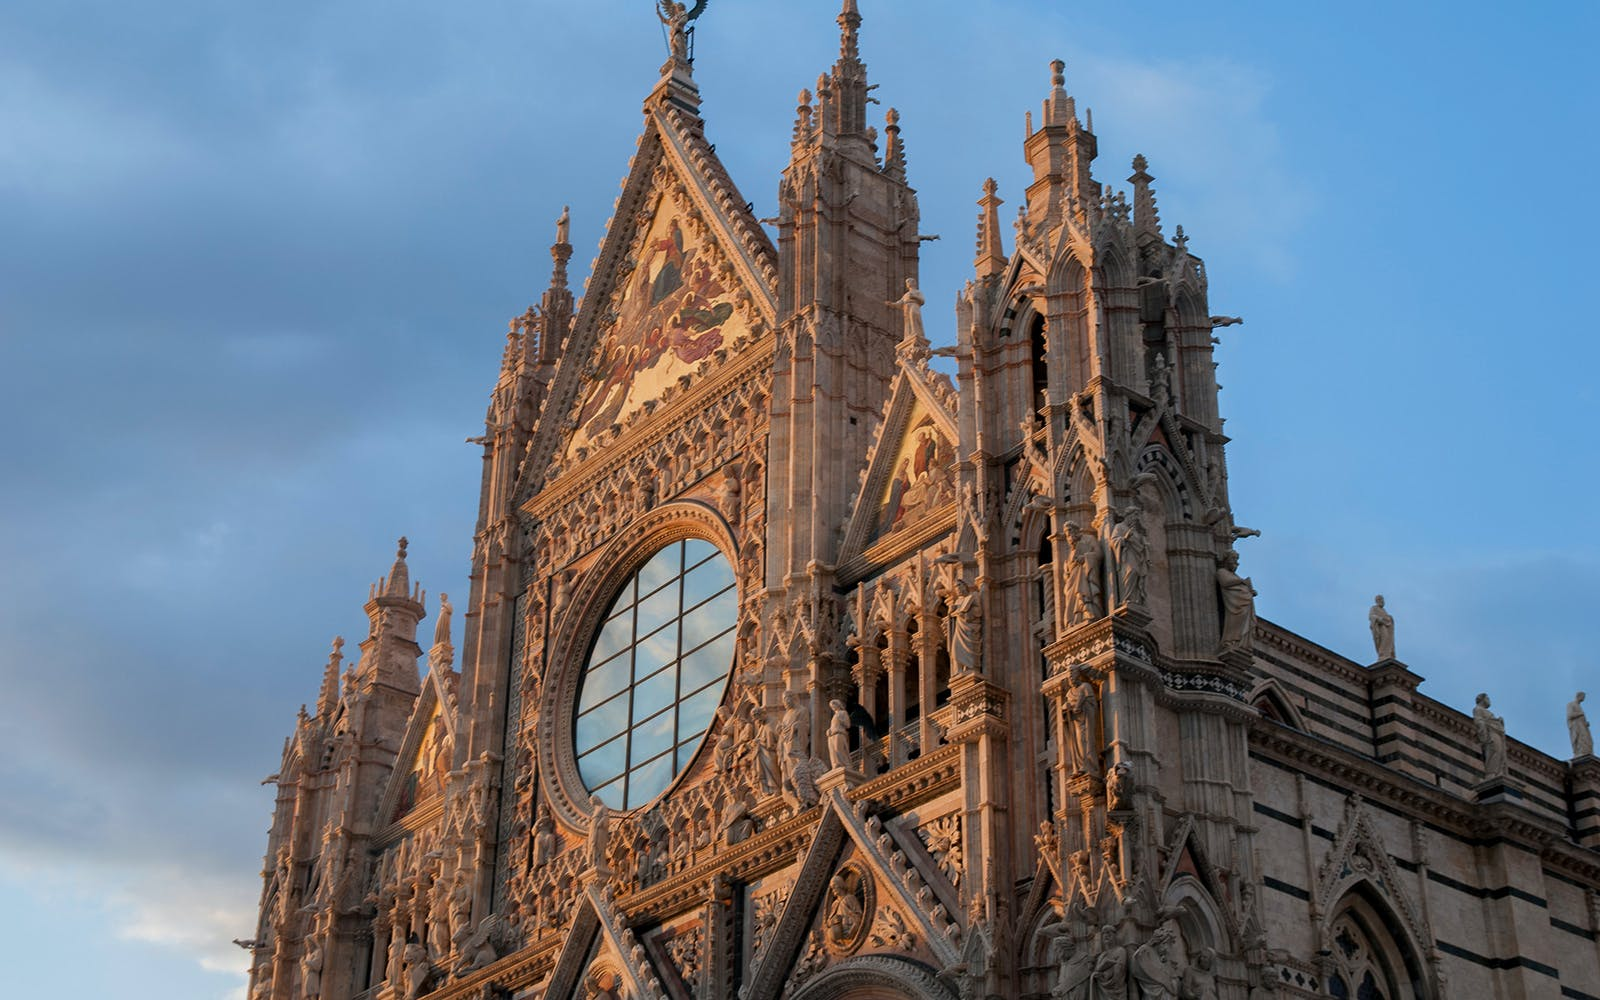 skip the line tickets with audioguide to duomo di milano, rooftop & museum -1